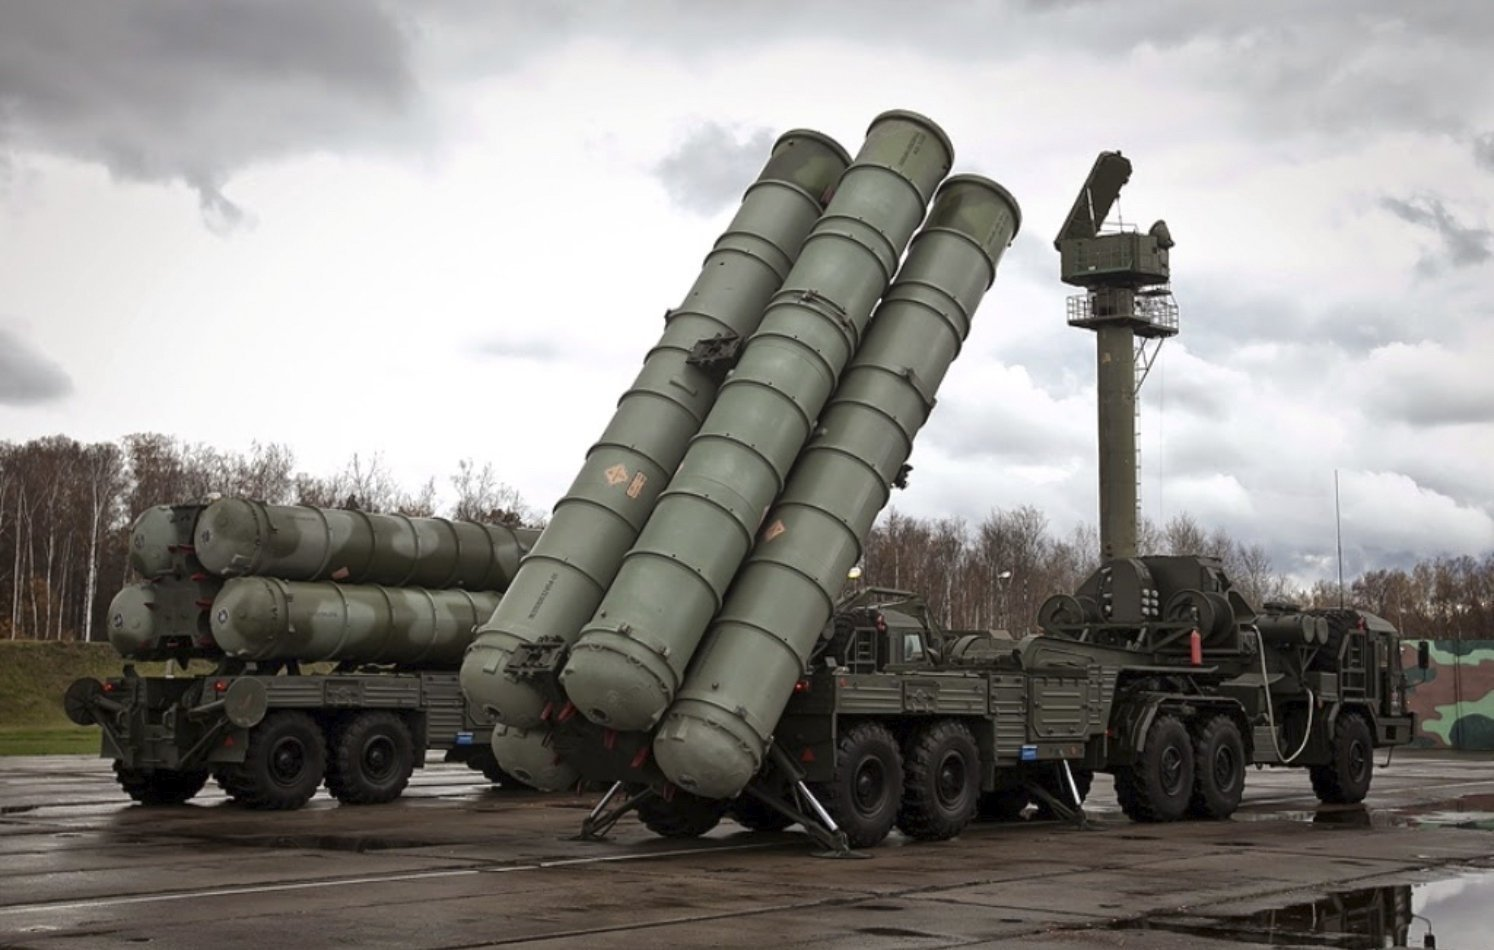 A general view of the S-400 missile defense system. (File Photo)